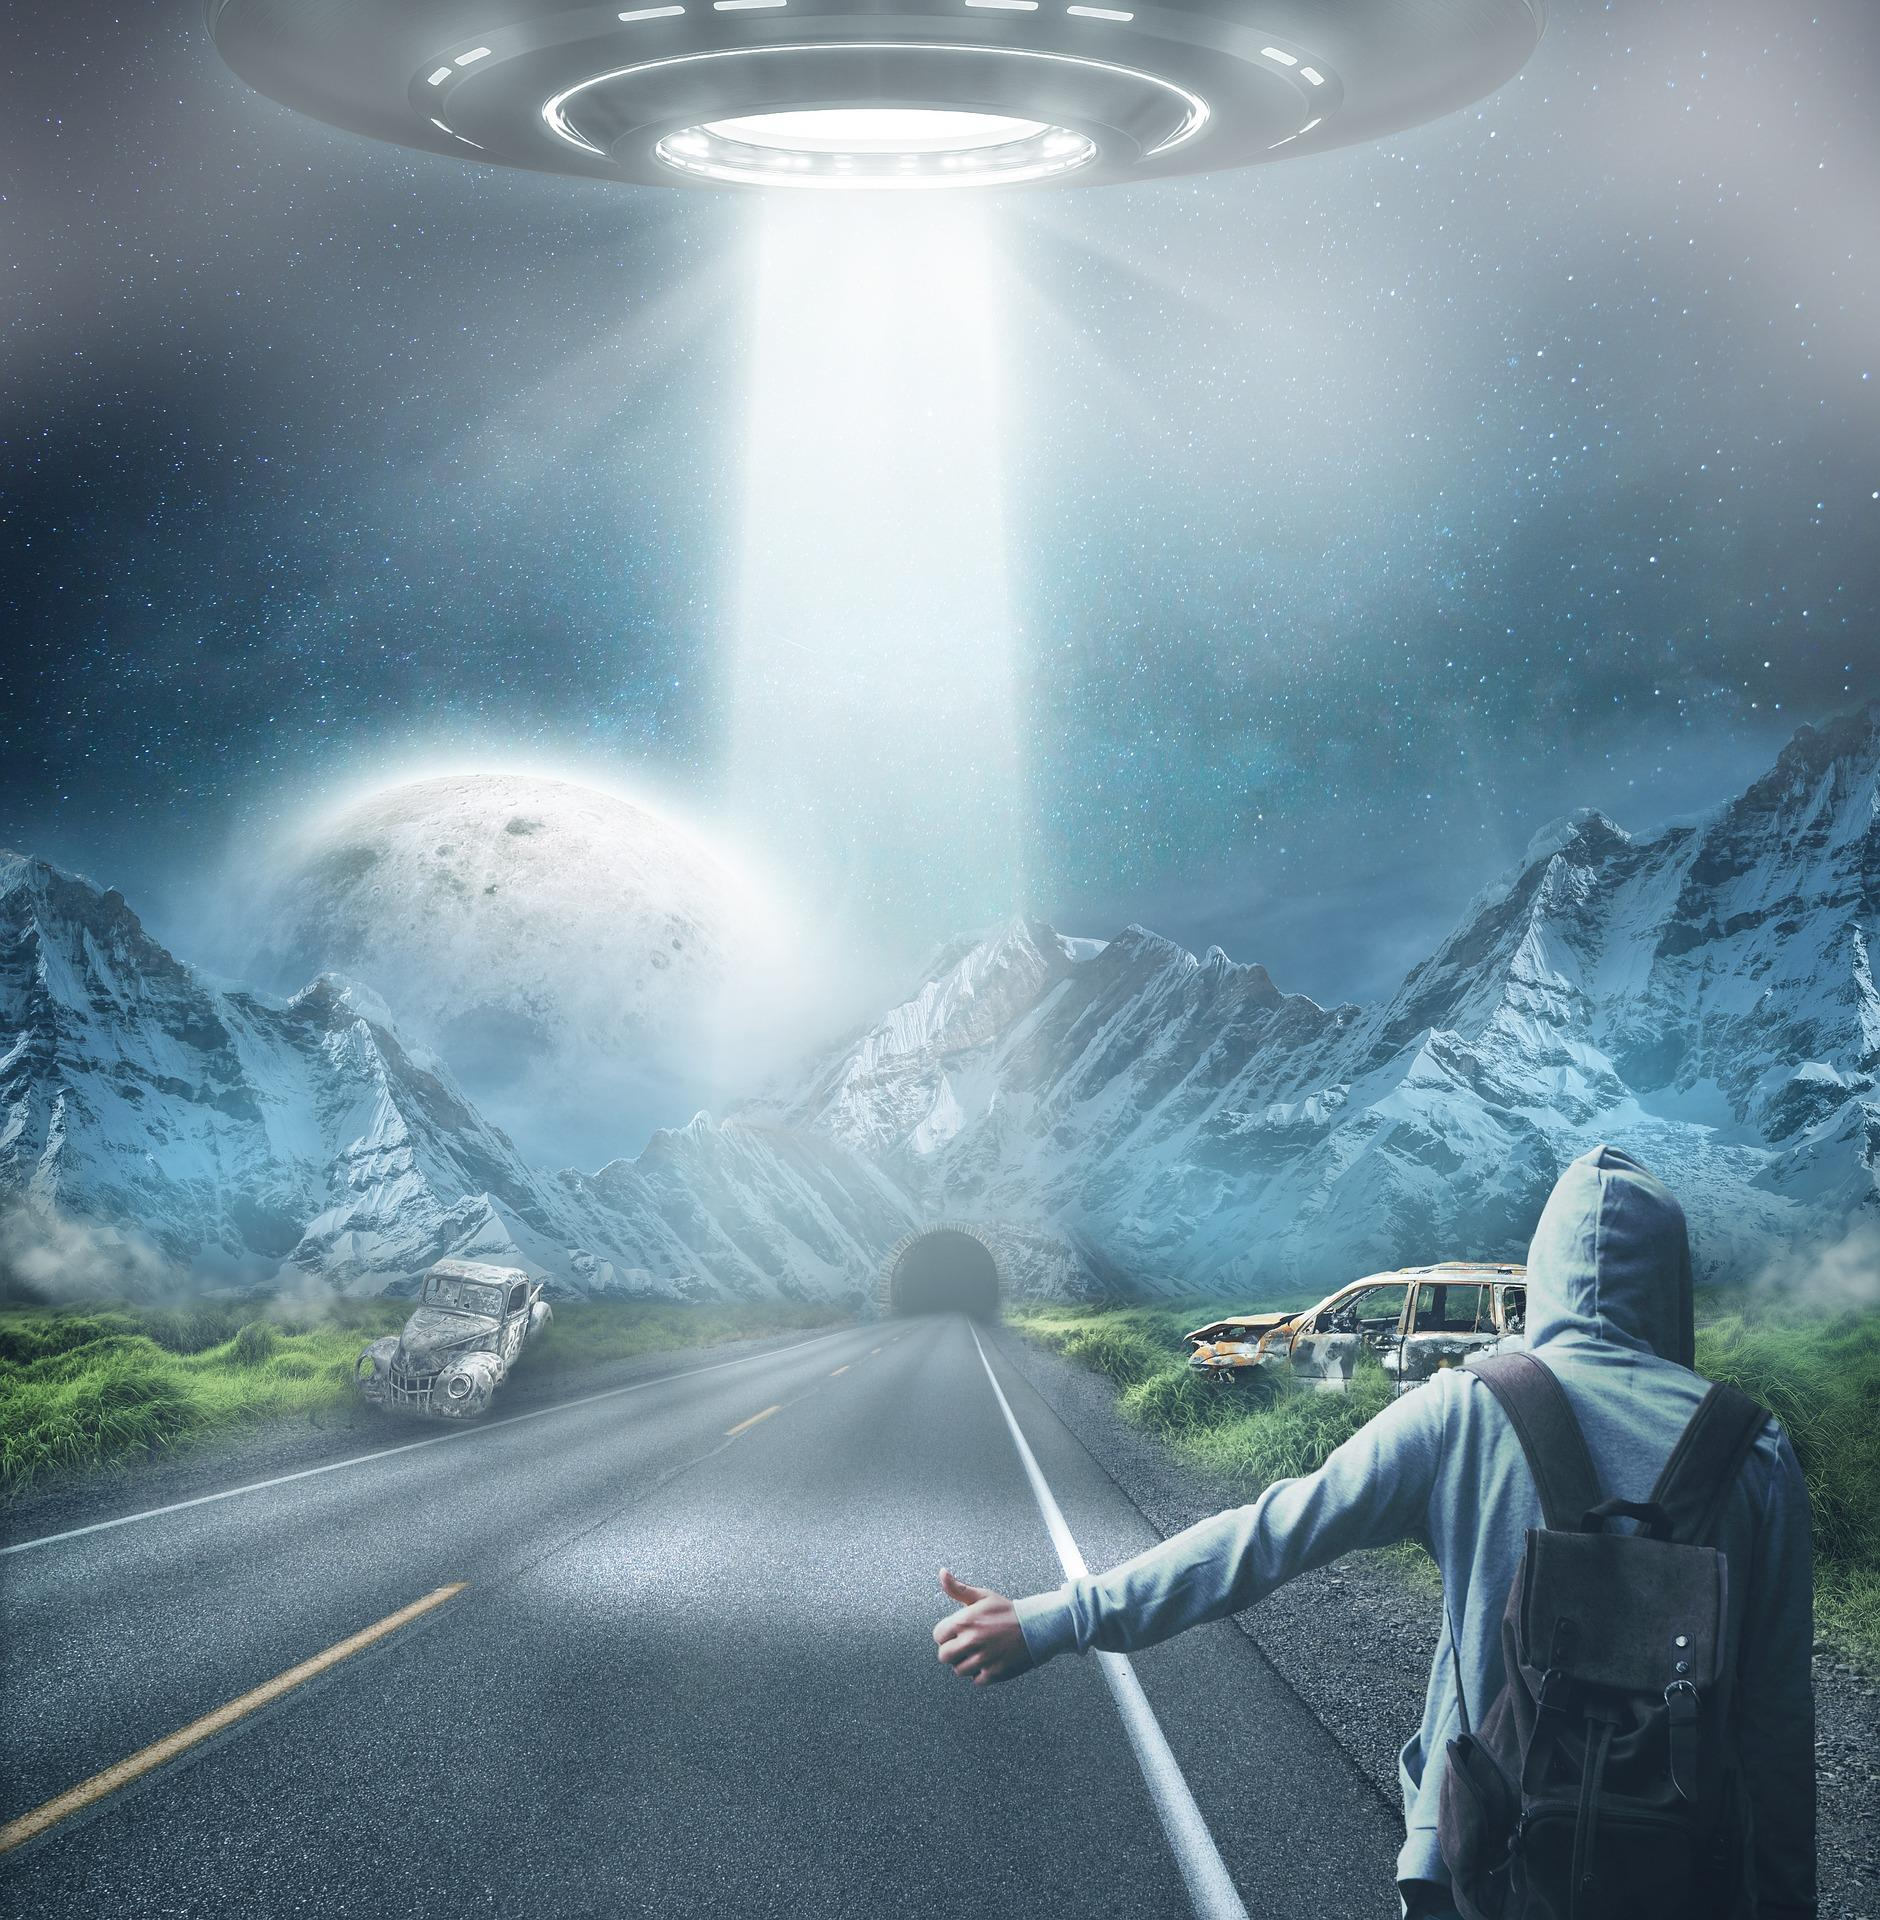 UFOs, Ufology, ETs, The Disclosure Project